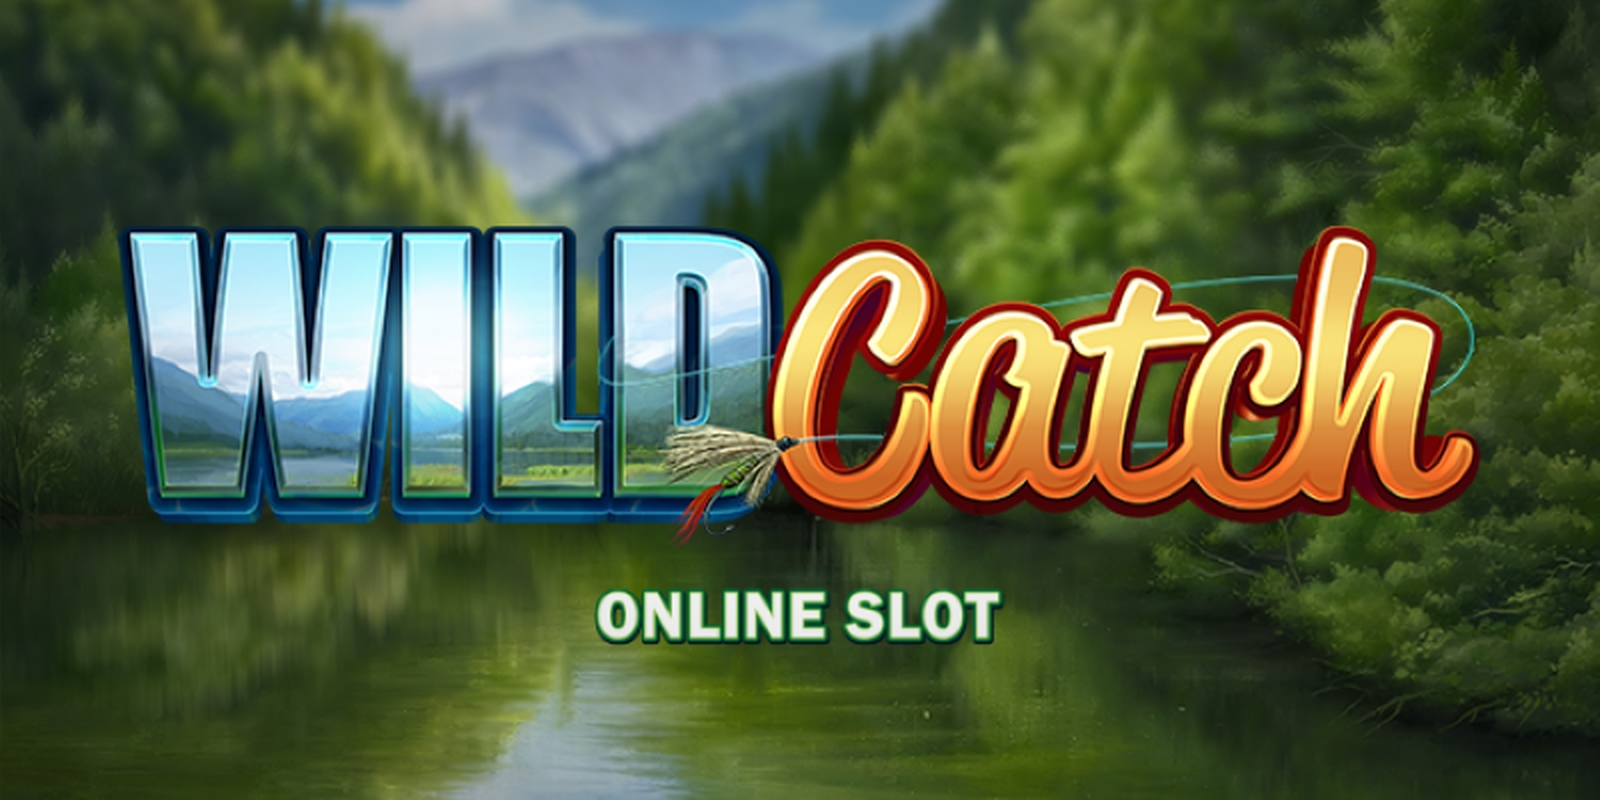 The Wild Catch (Stormcraft Studios) Online Slot Demo Game by Stormcraft Studios